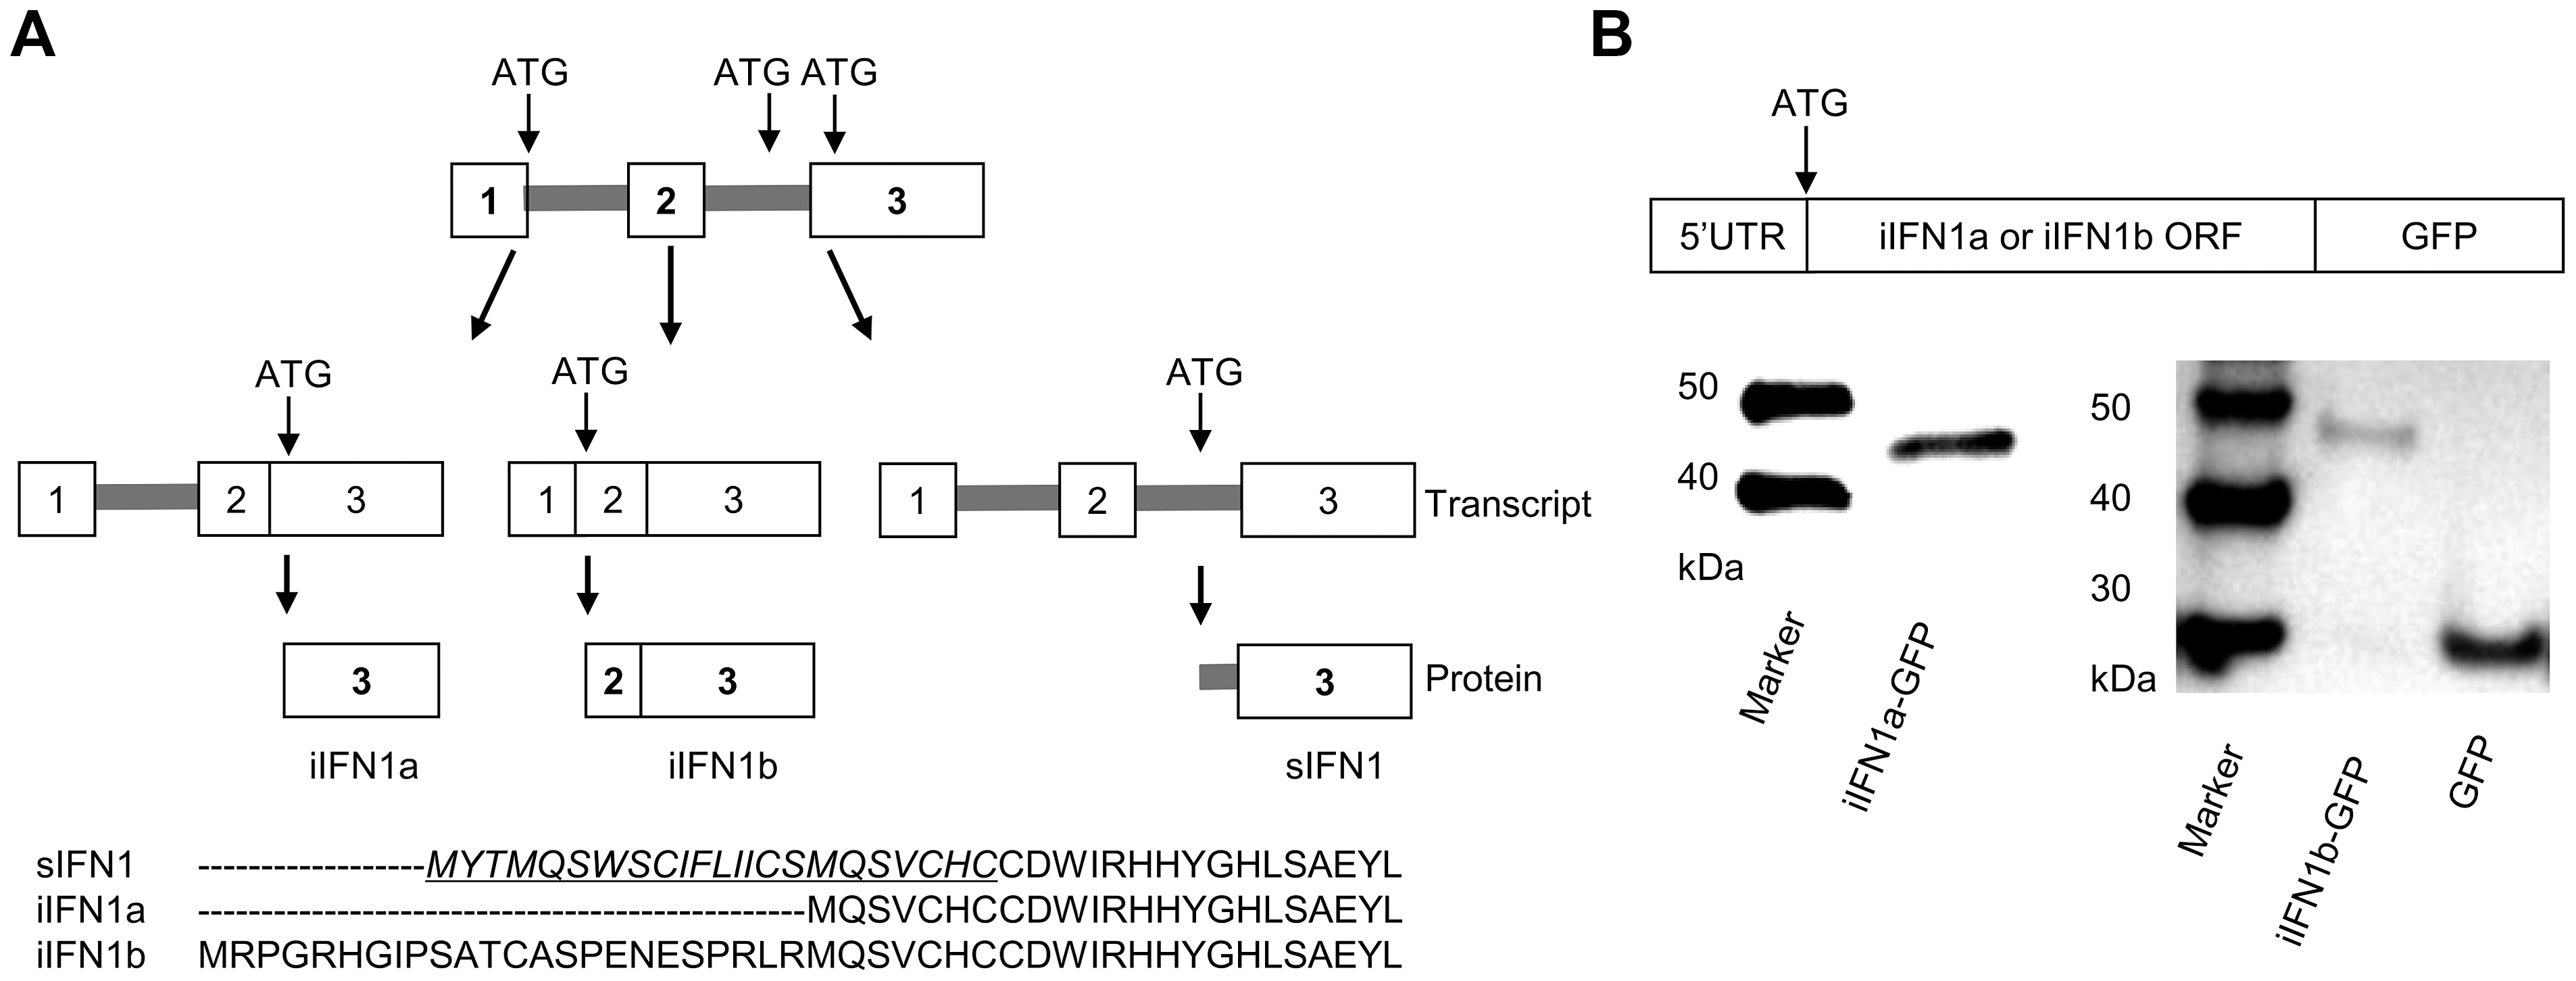 Alternative splicing of rainbow trout IFN1 mRNA leads to synthesis of intracellular proteins.